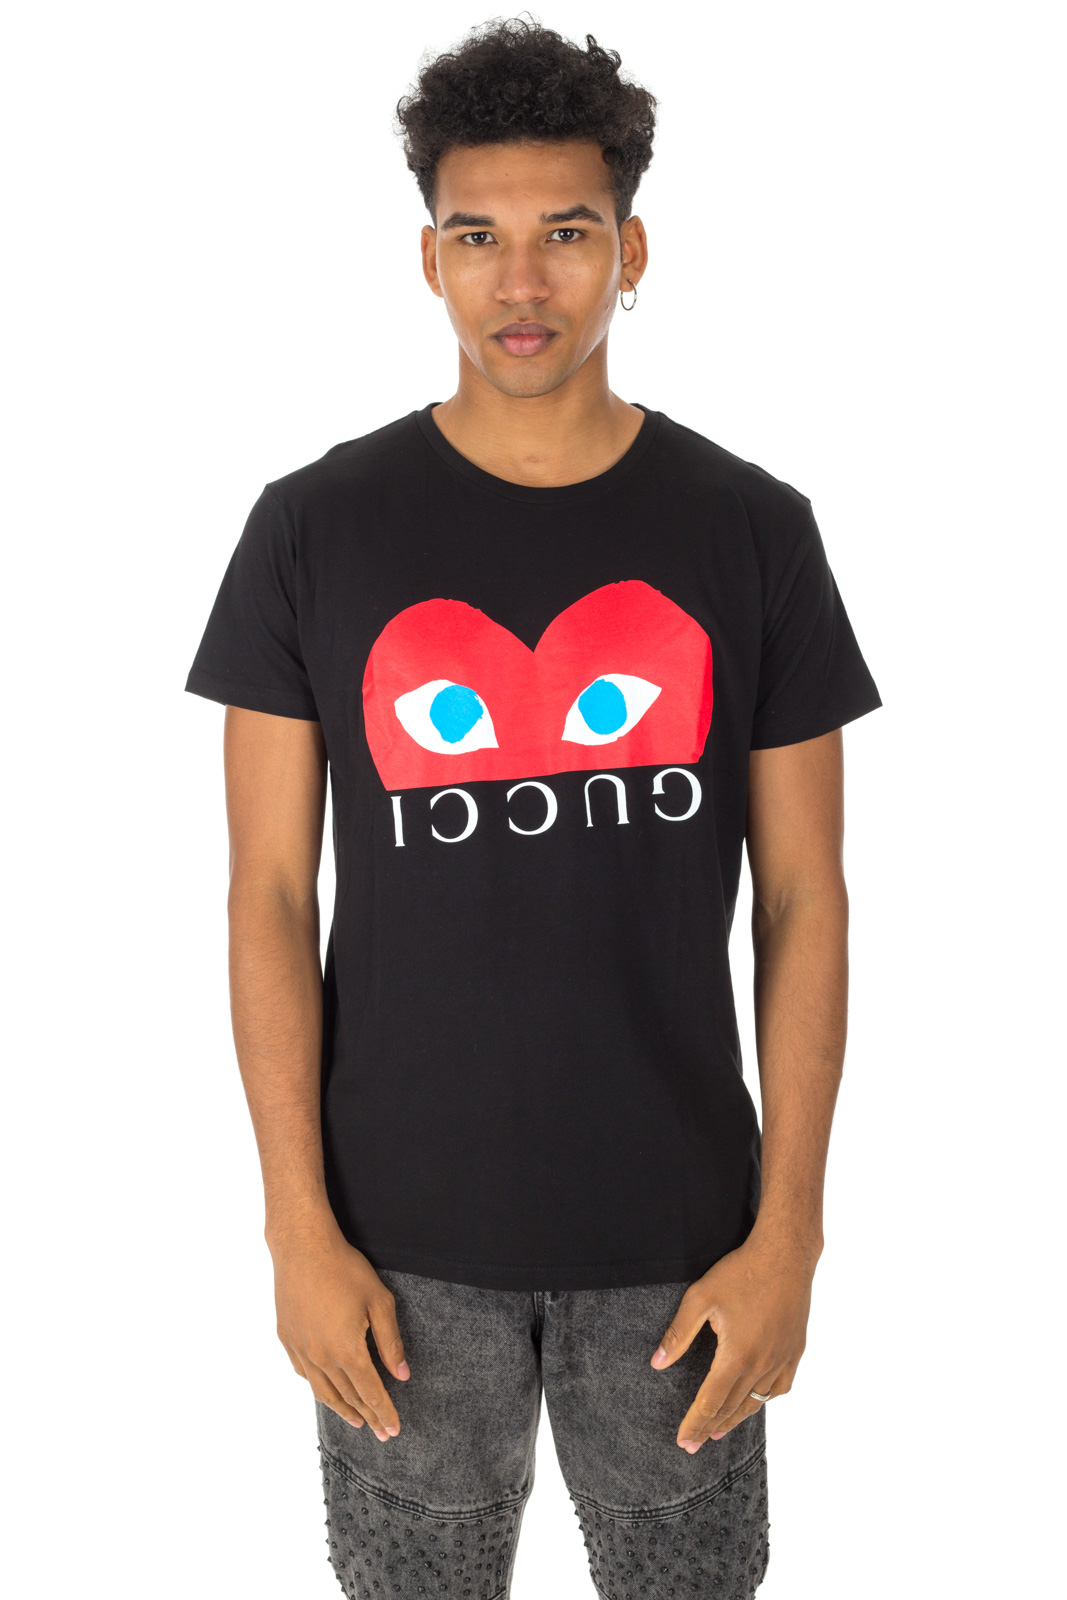 Faking - Gucci T-shirts and Comme Des Garcons Unisex Black